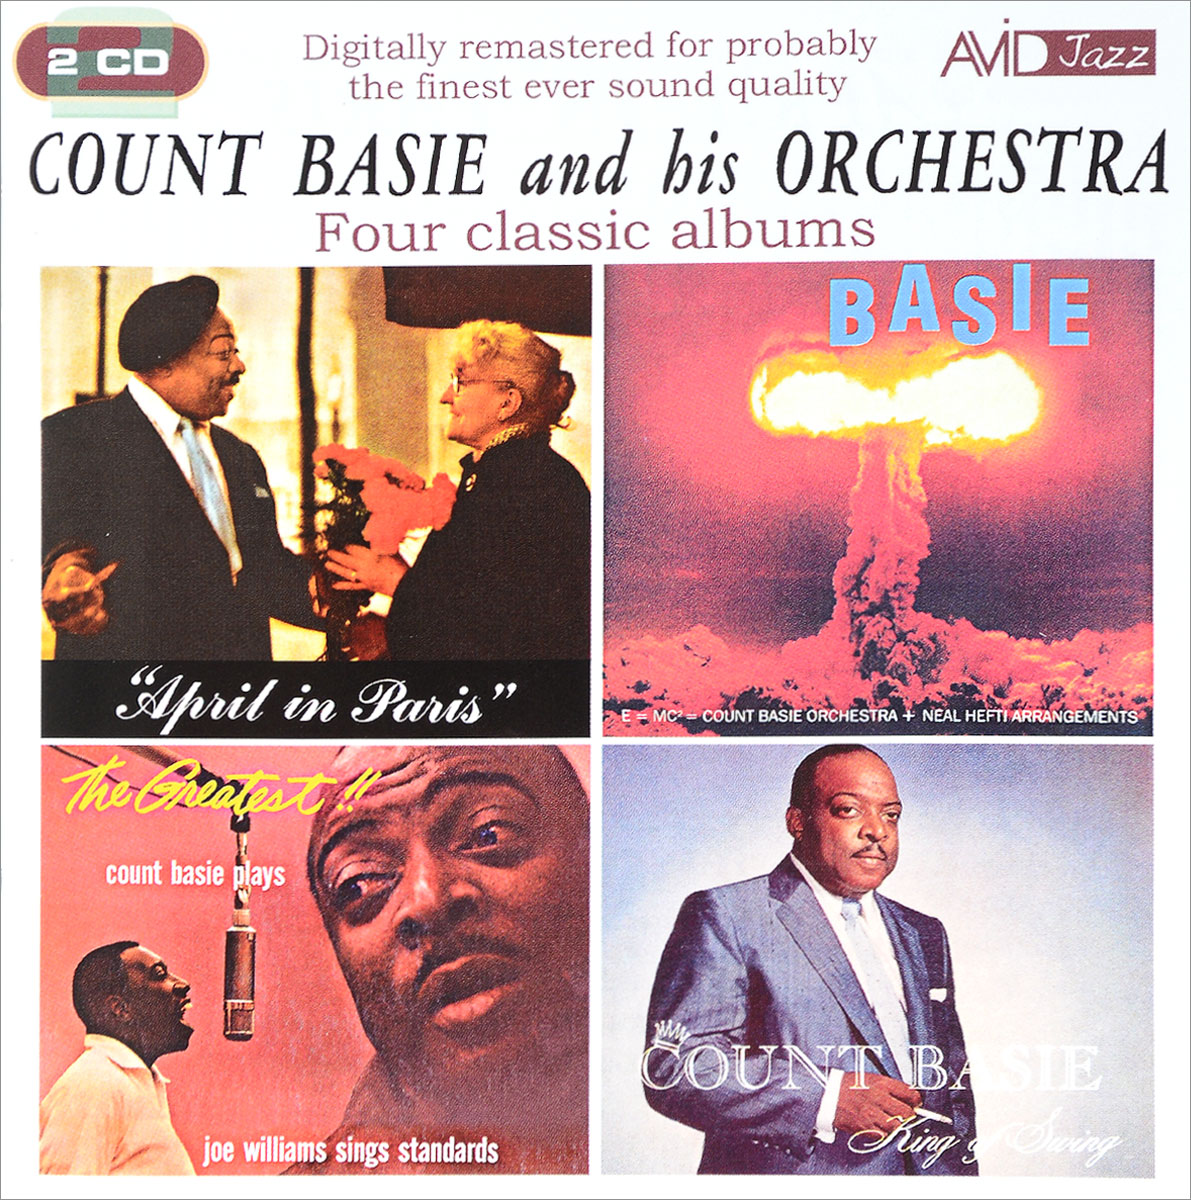 The Count Basie Orchestra,Каунт Бэйси Avid Jazz. Count Basie And His Orchestra. Four Classic Albums (2 CD) каунт бэйси count basie april in paris lp